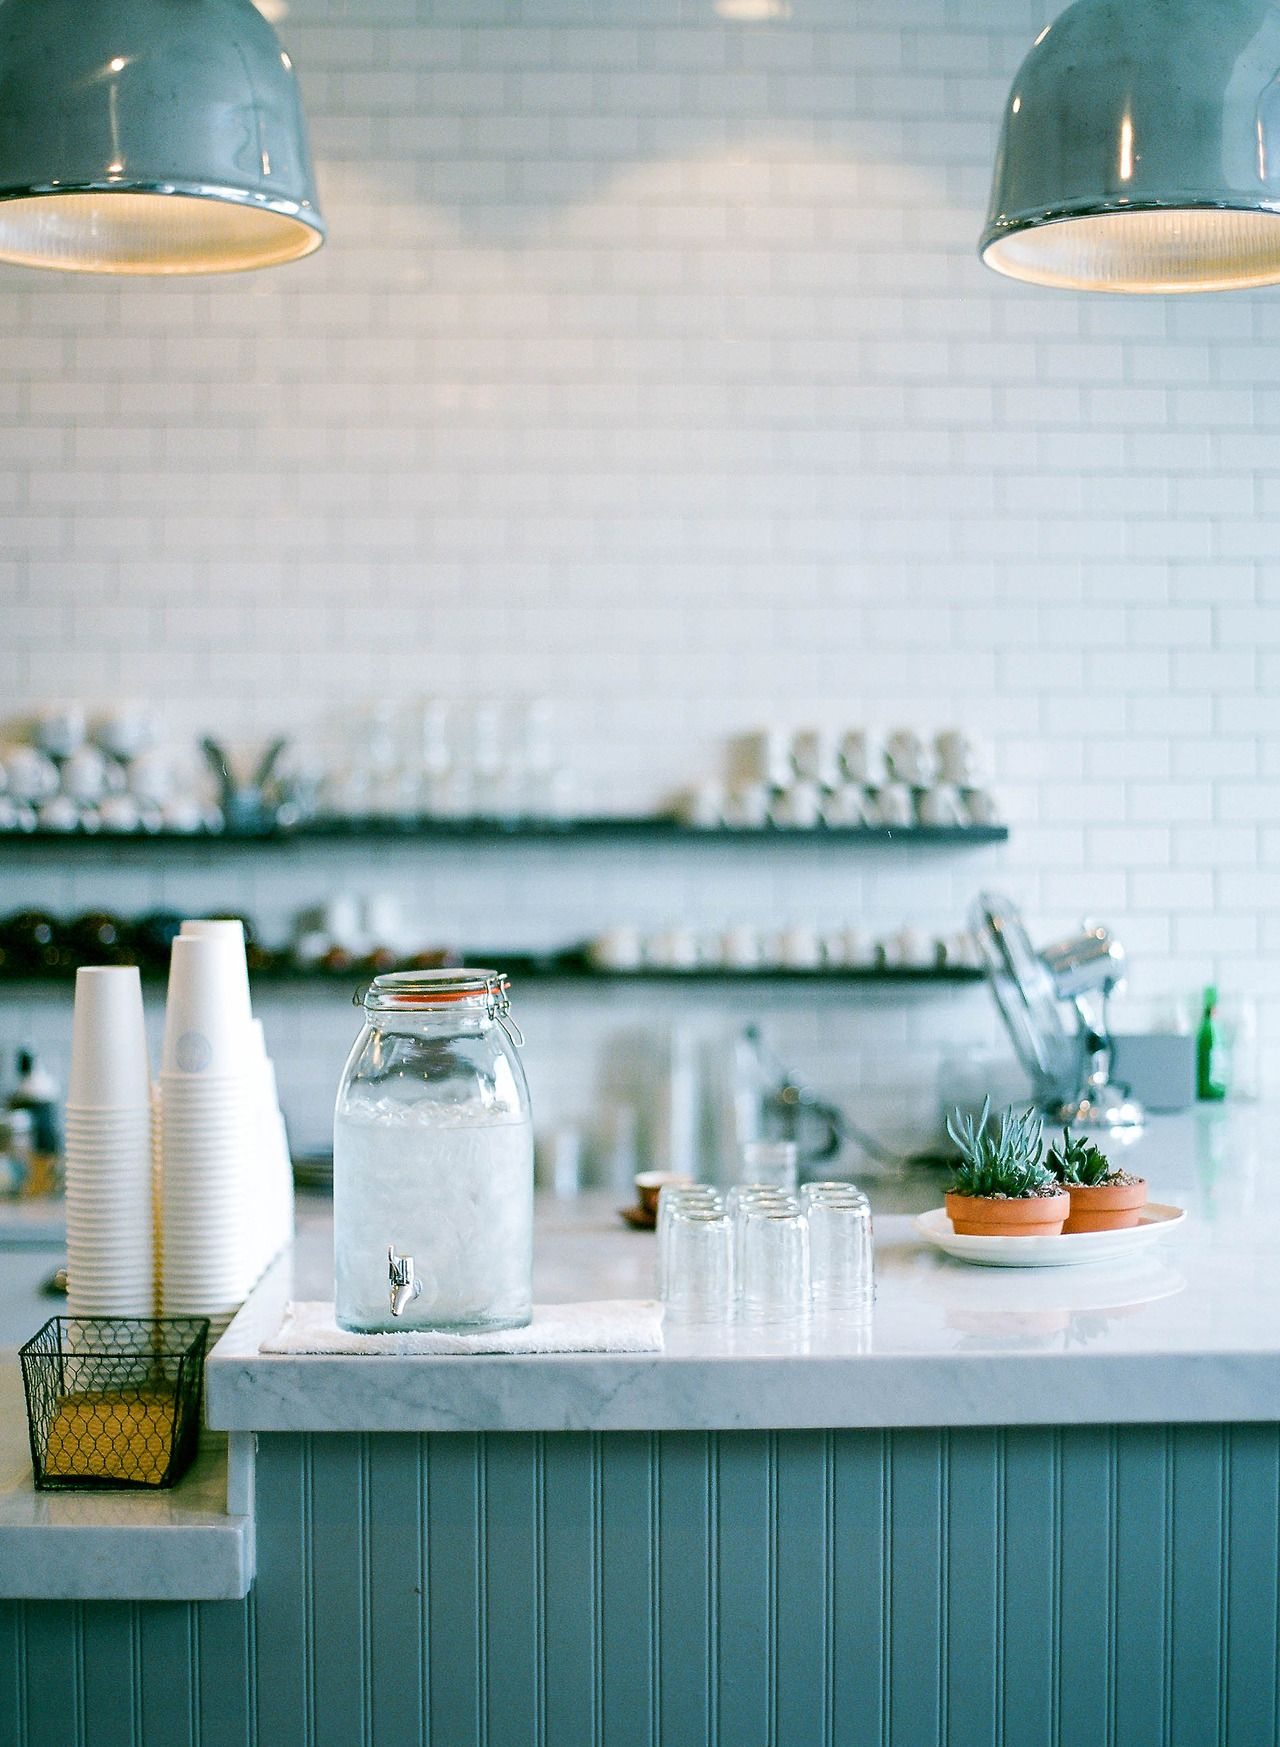 san francisco's beacon coffee and pantry uses seafoam blue shelves